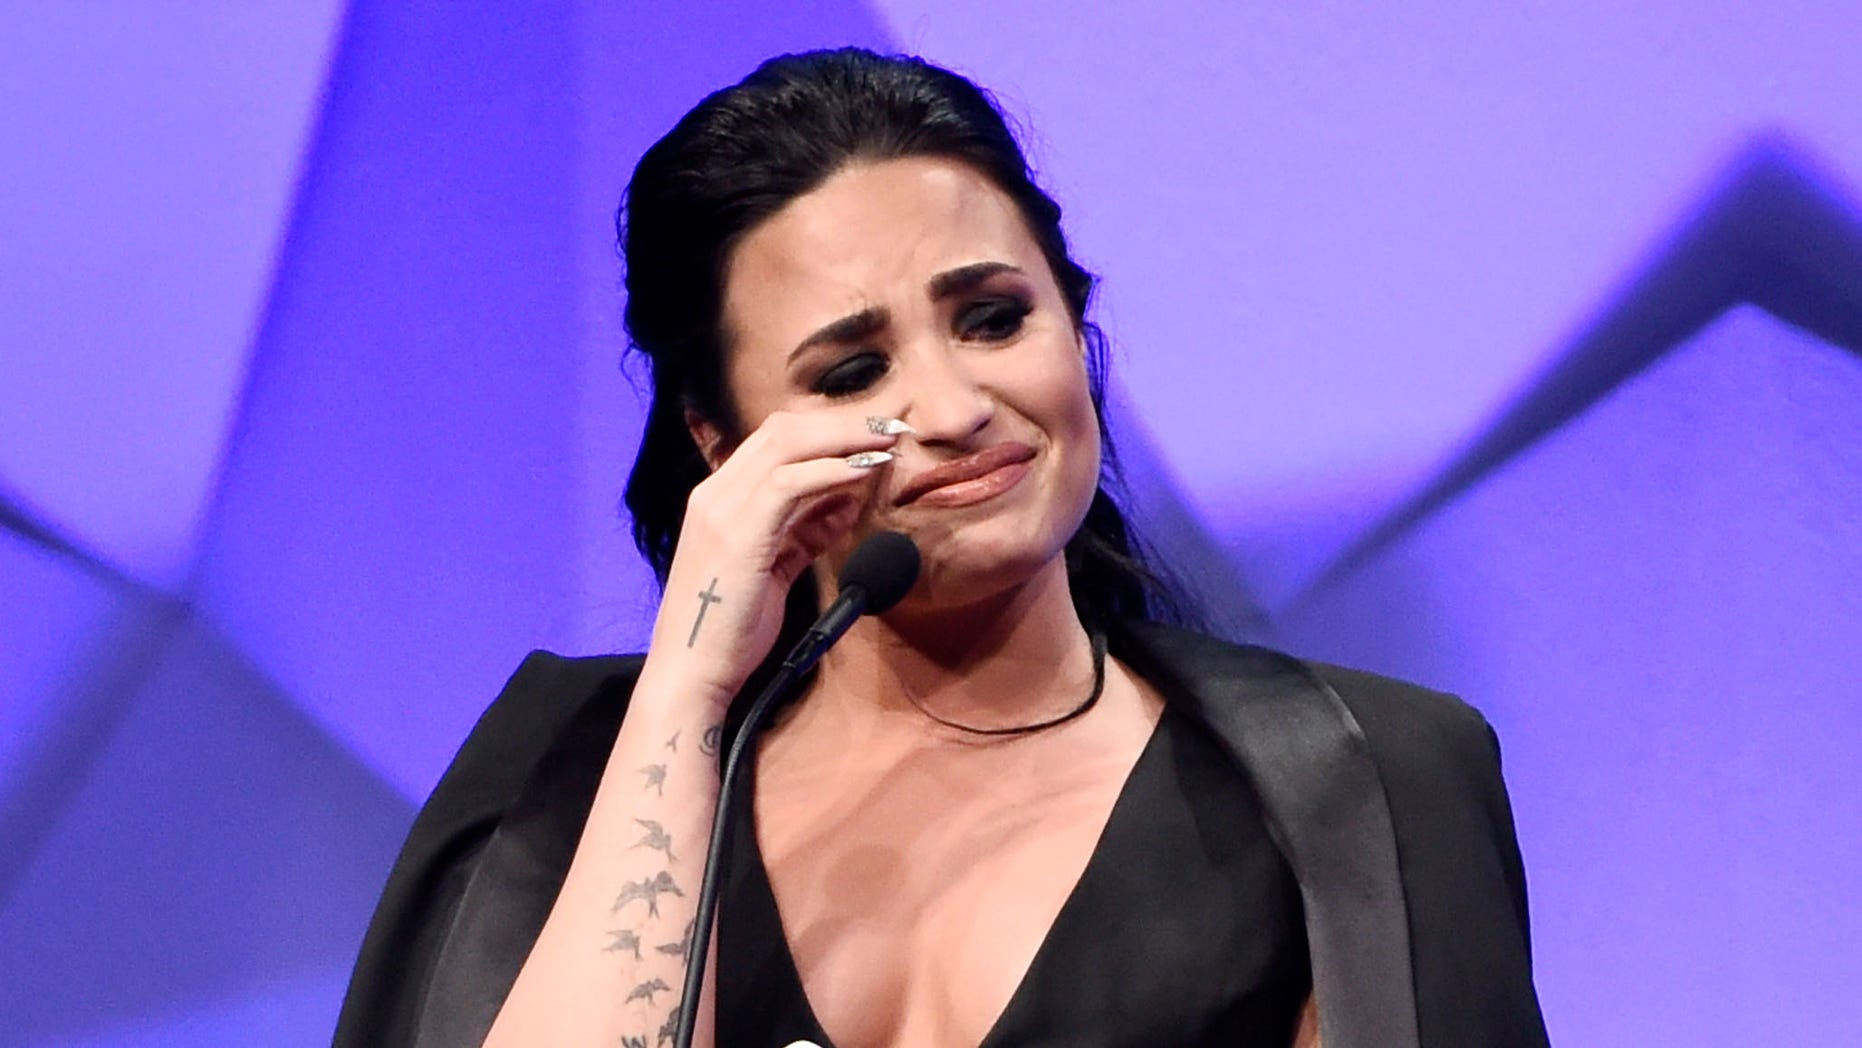 Singer Demi Lovato becomes emotional as she accepts the Vanguard Award during the 27th Annual GLAAD Media Awards at the Beverly Hilton on Saturday, April 2, 2016, in Beverly Hills, Calif. (Photo by Chris Pizzello/Invision/AP)